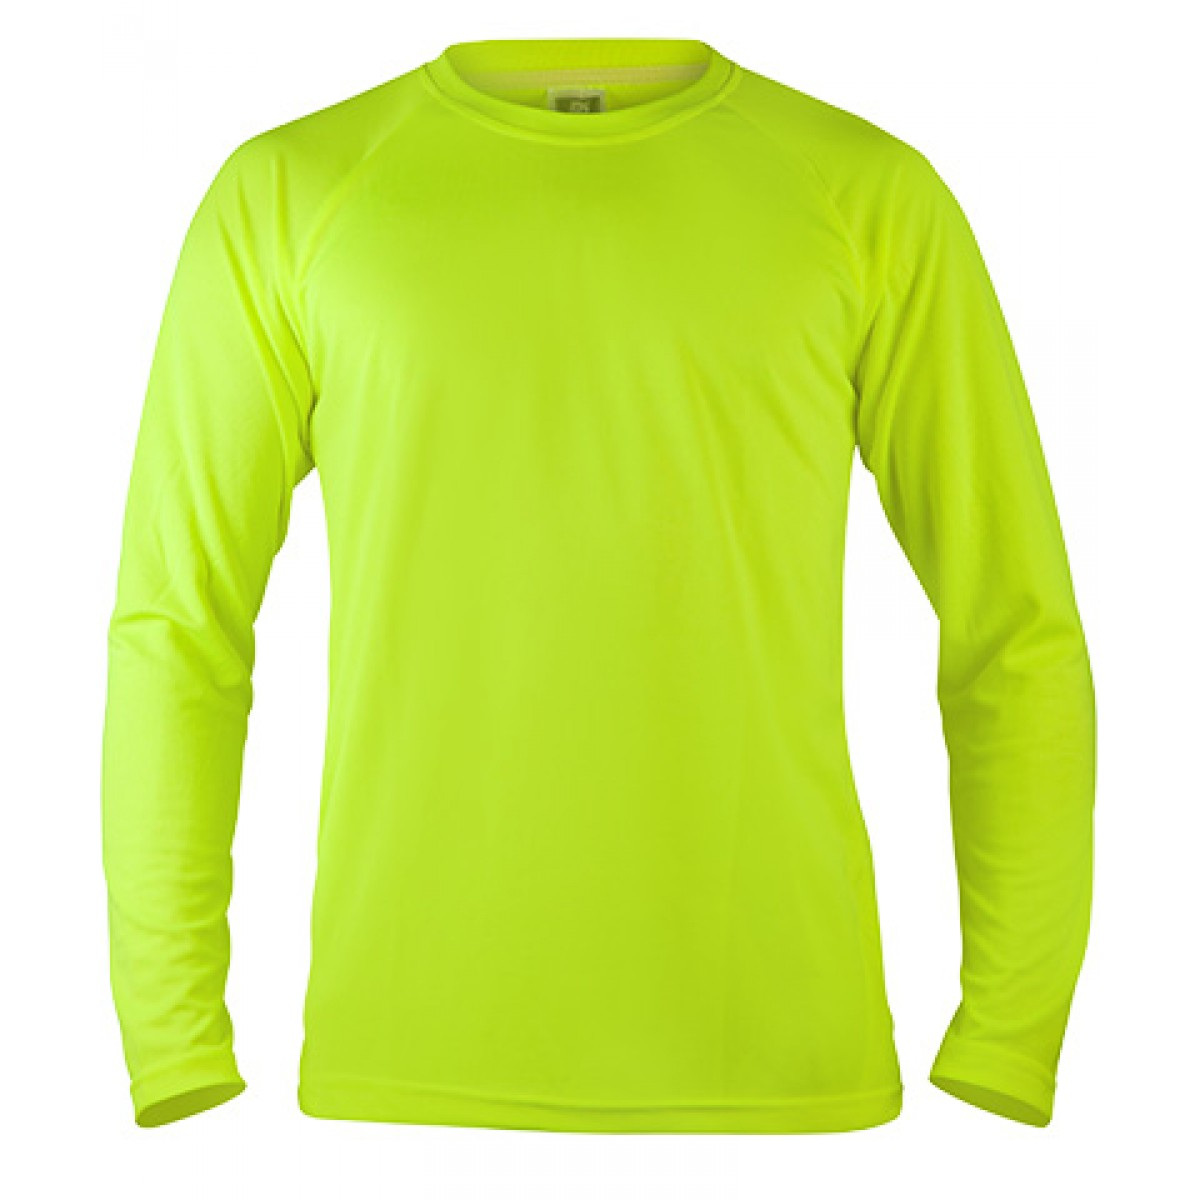 Long Sleeve Mesh Performance T-shirt-Neon Green-YL